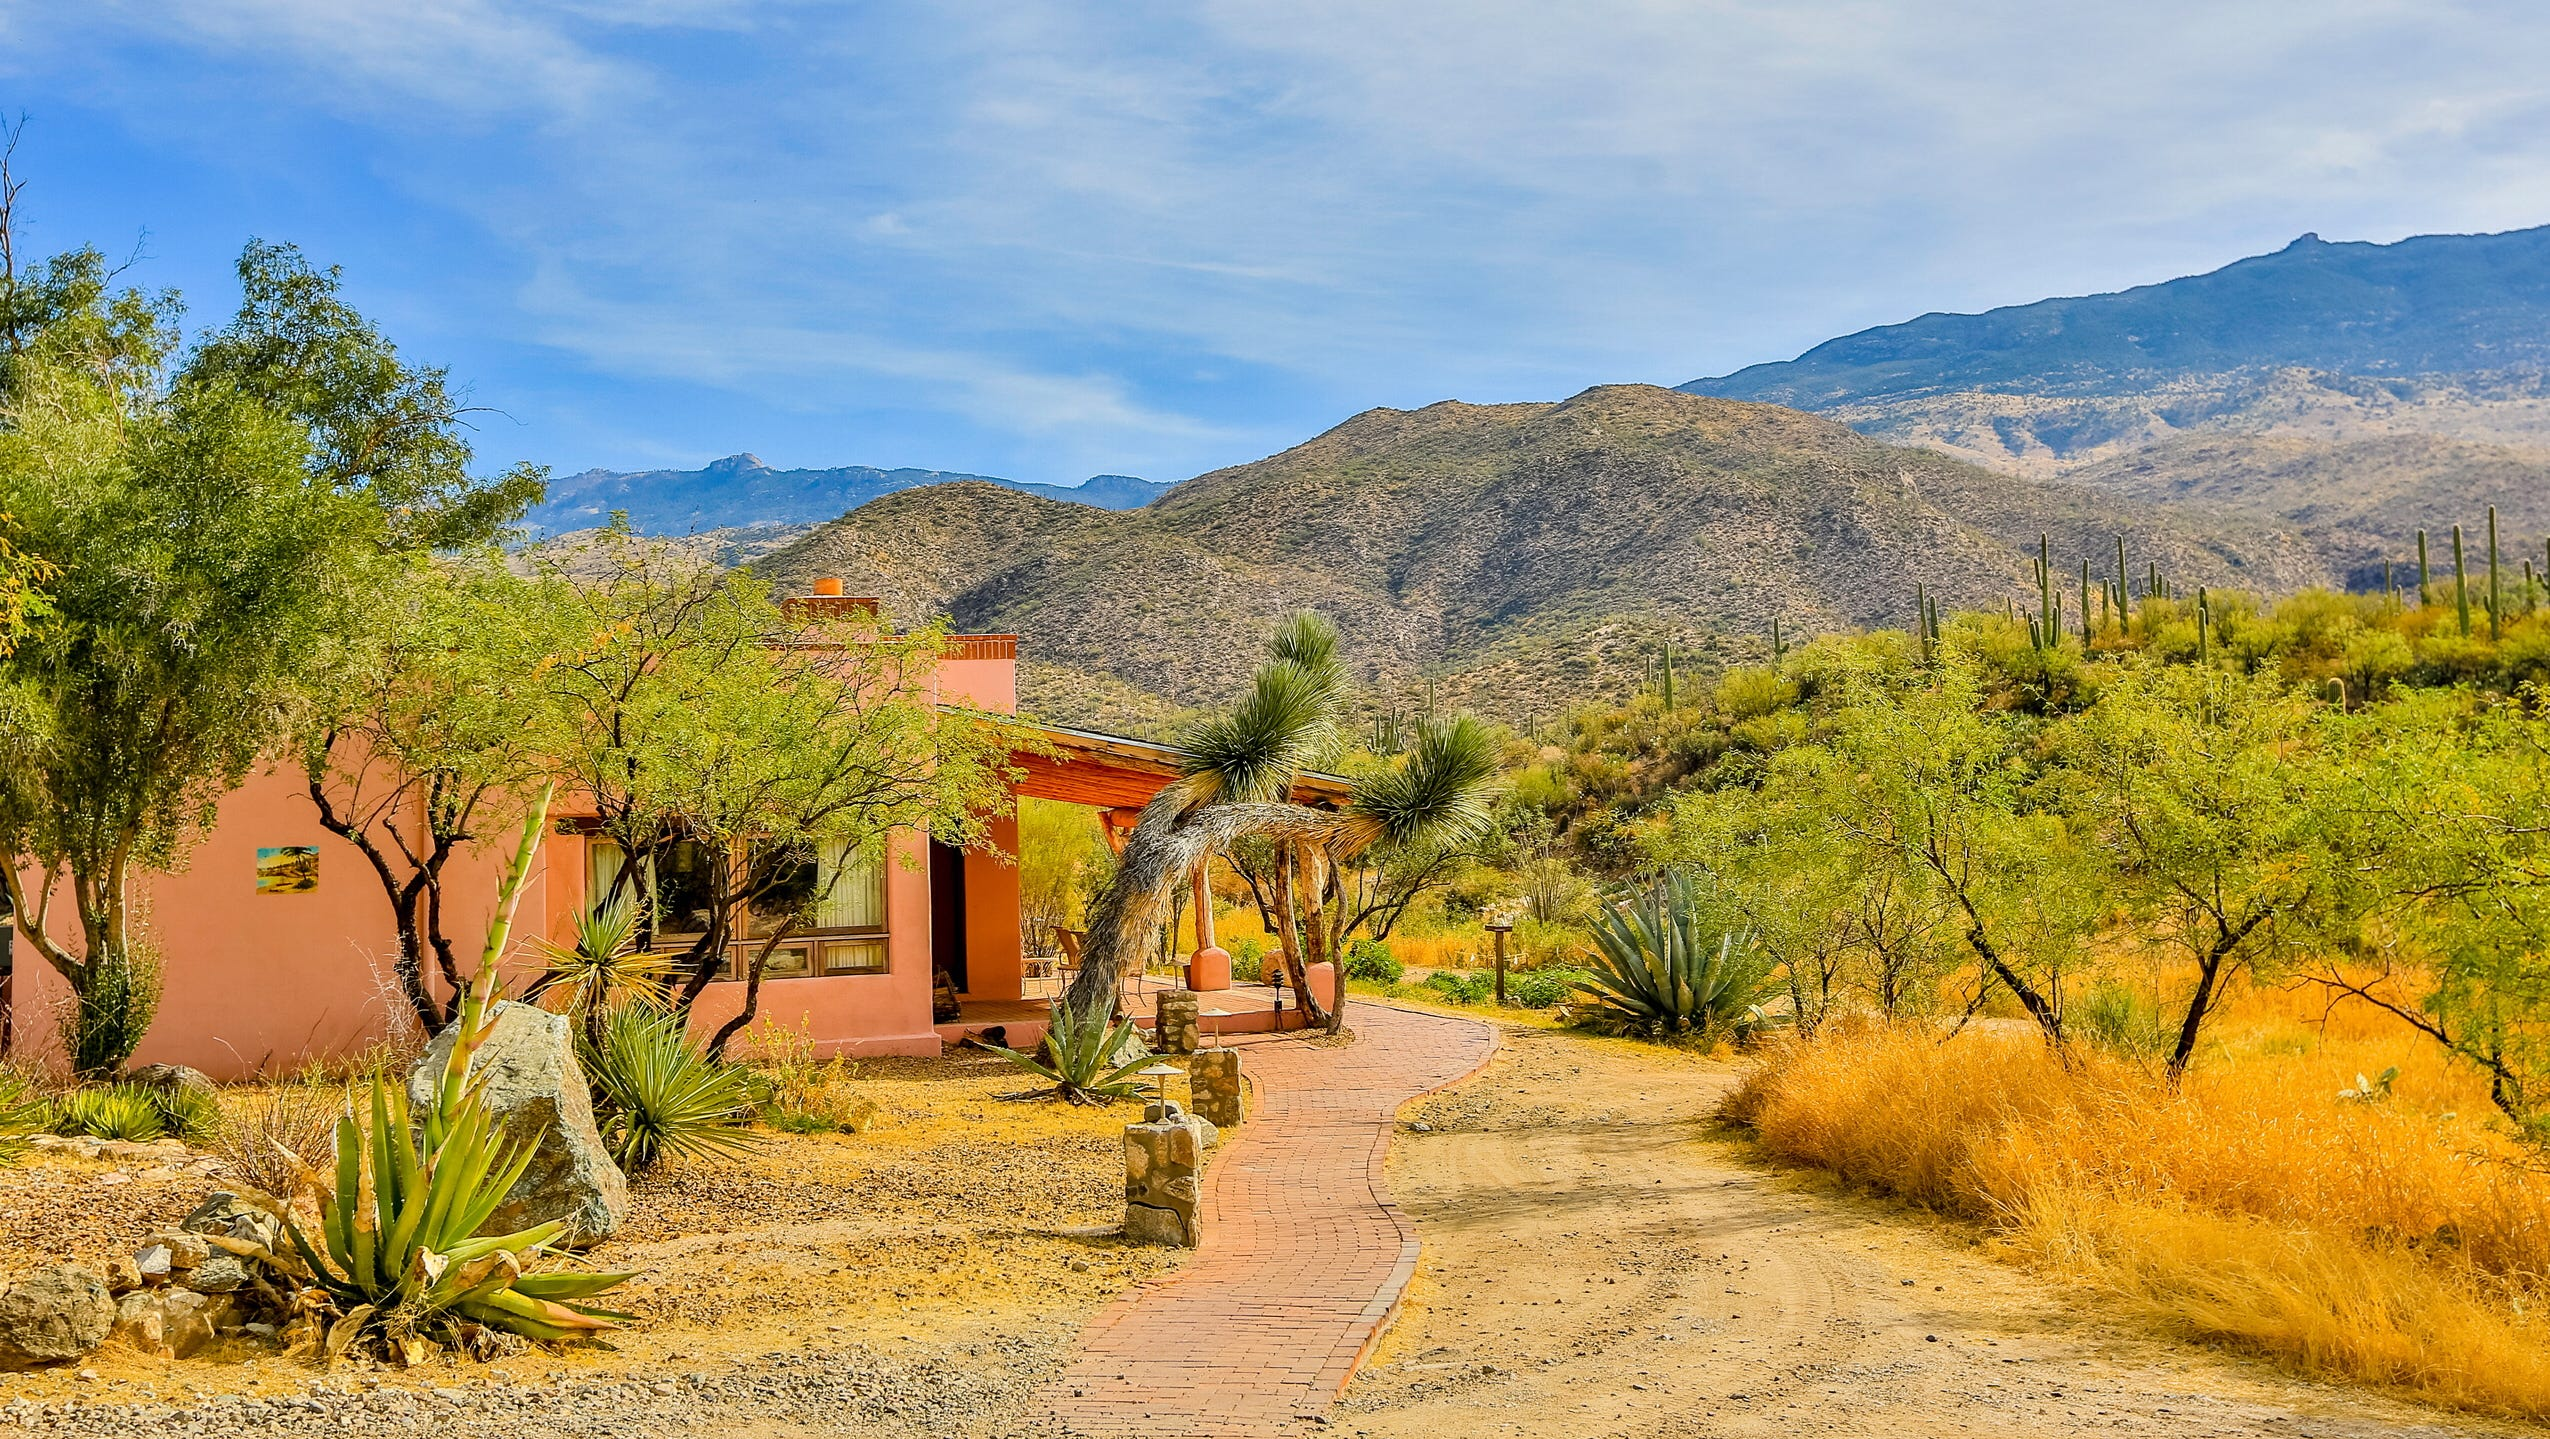 Tanque Verde Ranch guests stay in Santa Fe-style adobe buildings.